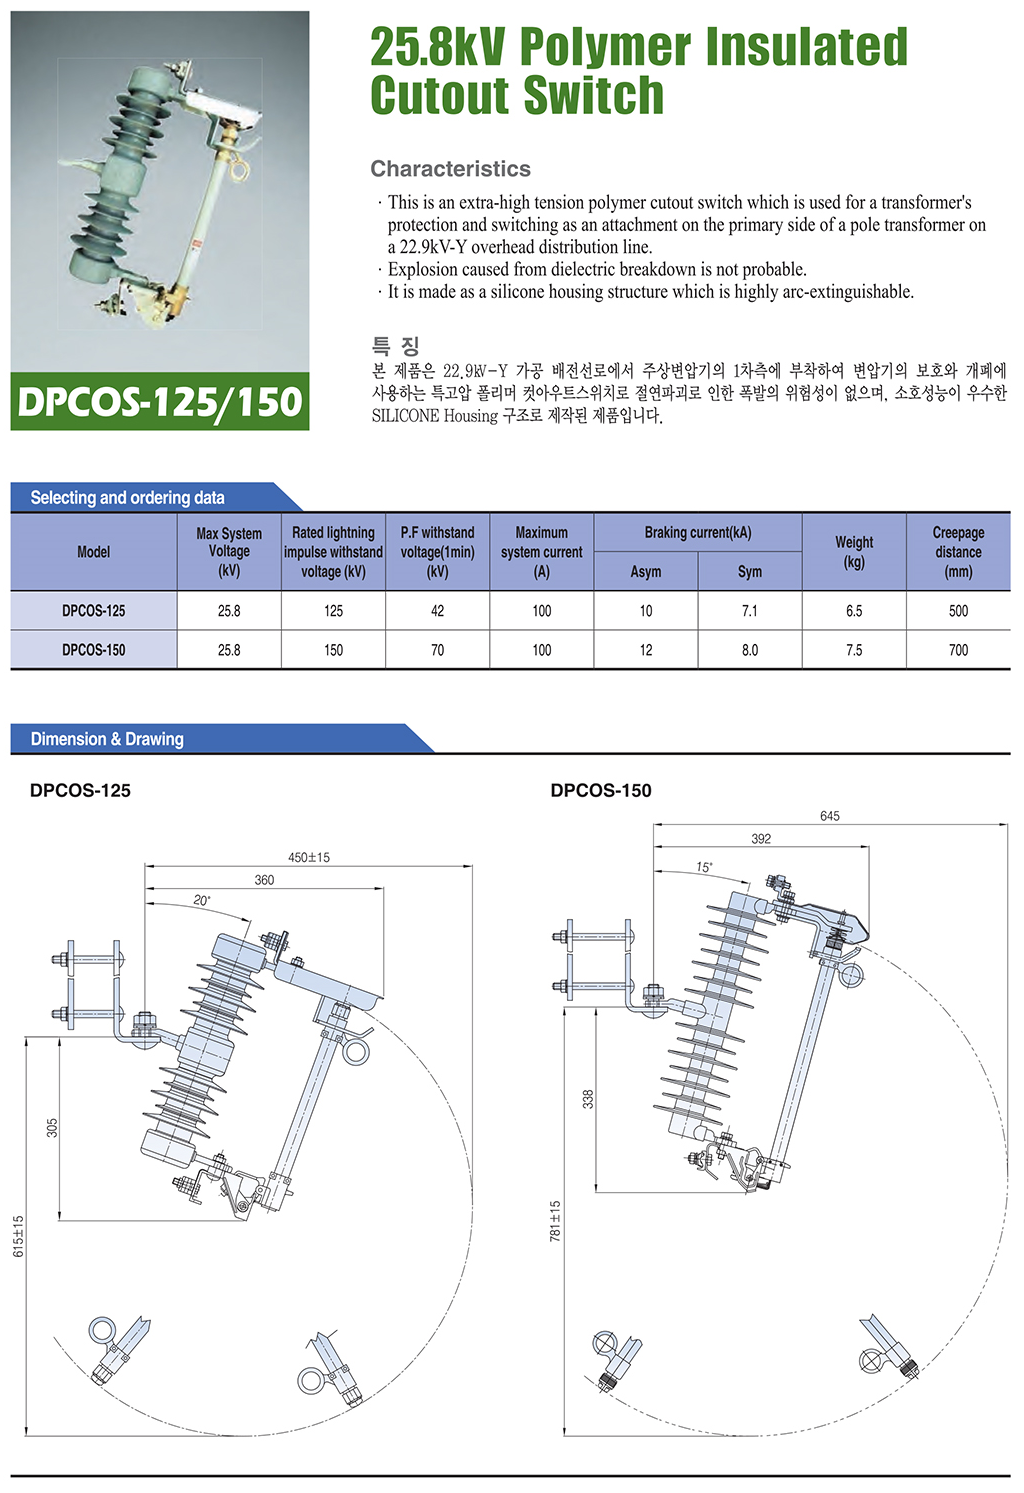 DONGWOO 25.8kV Polymer Insulated COS DPCOS-125/150